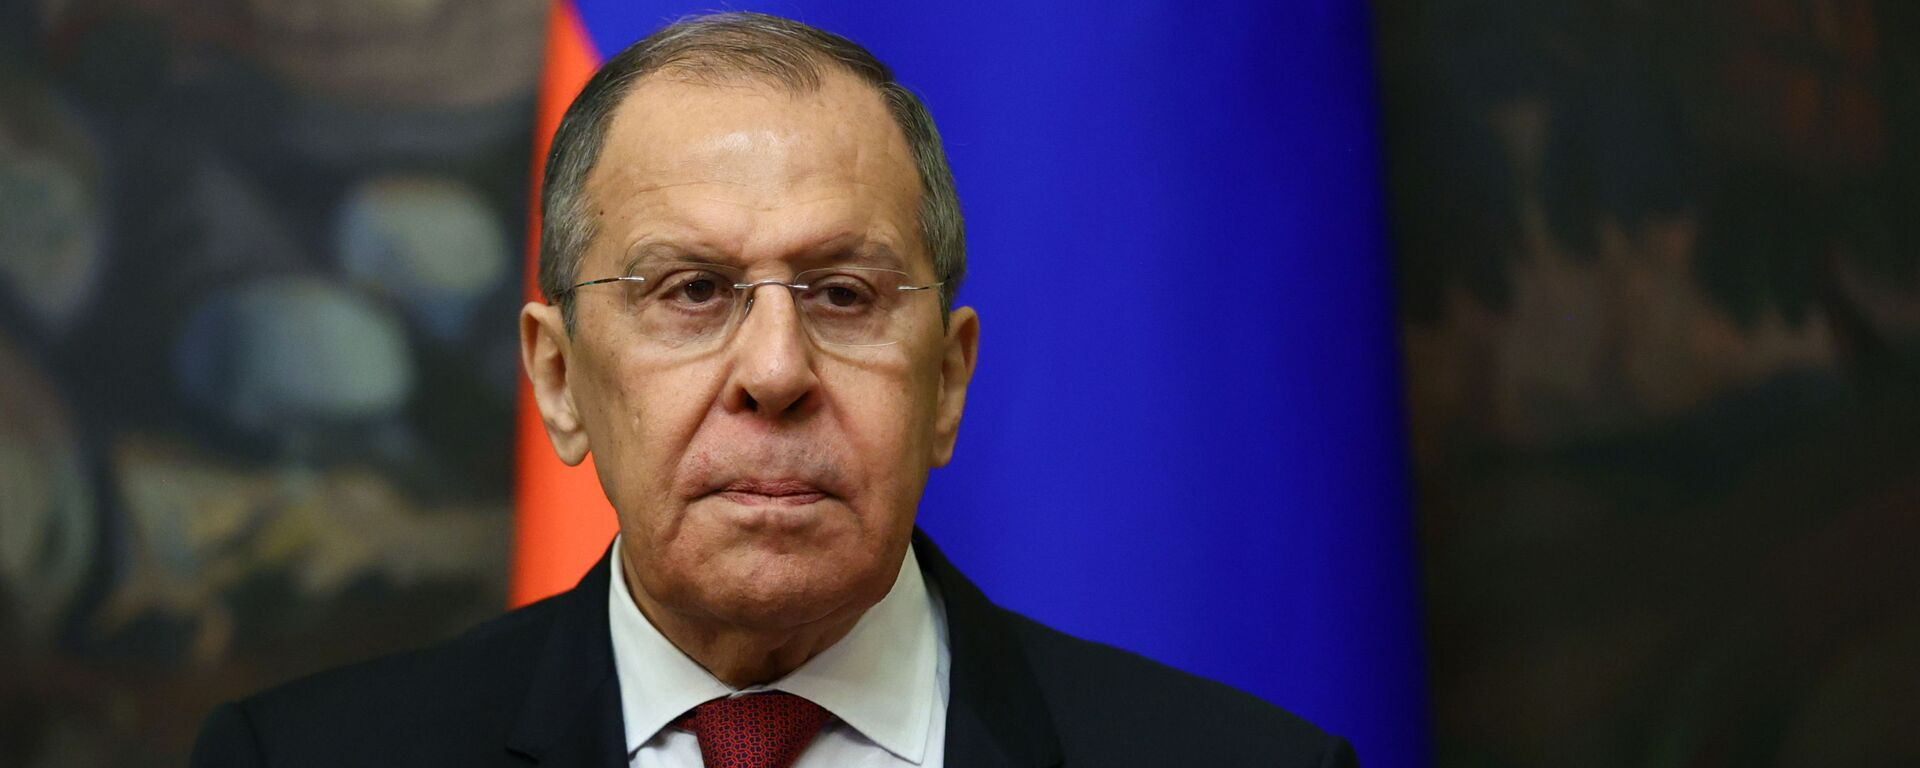 Russia's Foreign Minister Sergei Lavrov attends a meeting with his counterpart from Turkmenistan Rashid Meredov in Moscow, Russia April 1, 2021. - Sputnik International, 1920, 10.09.2021